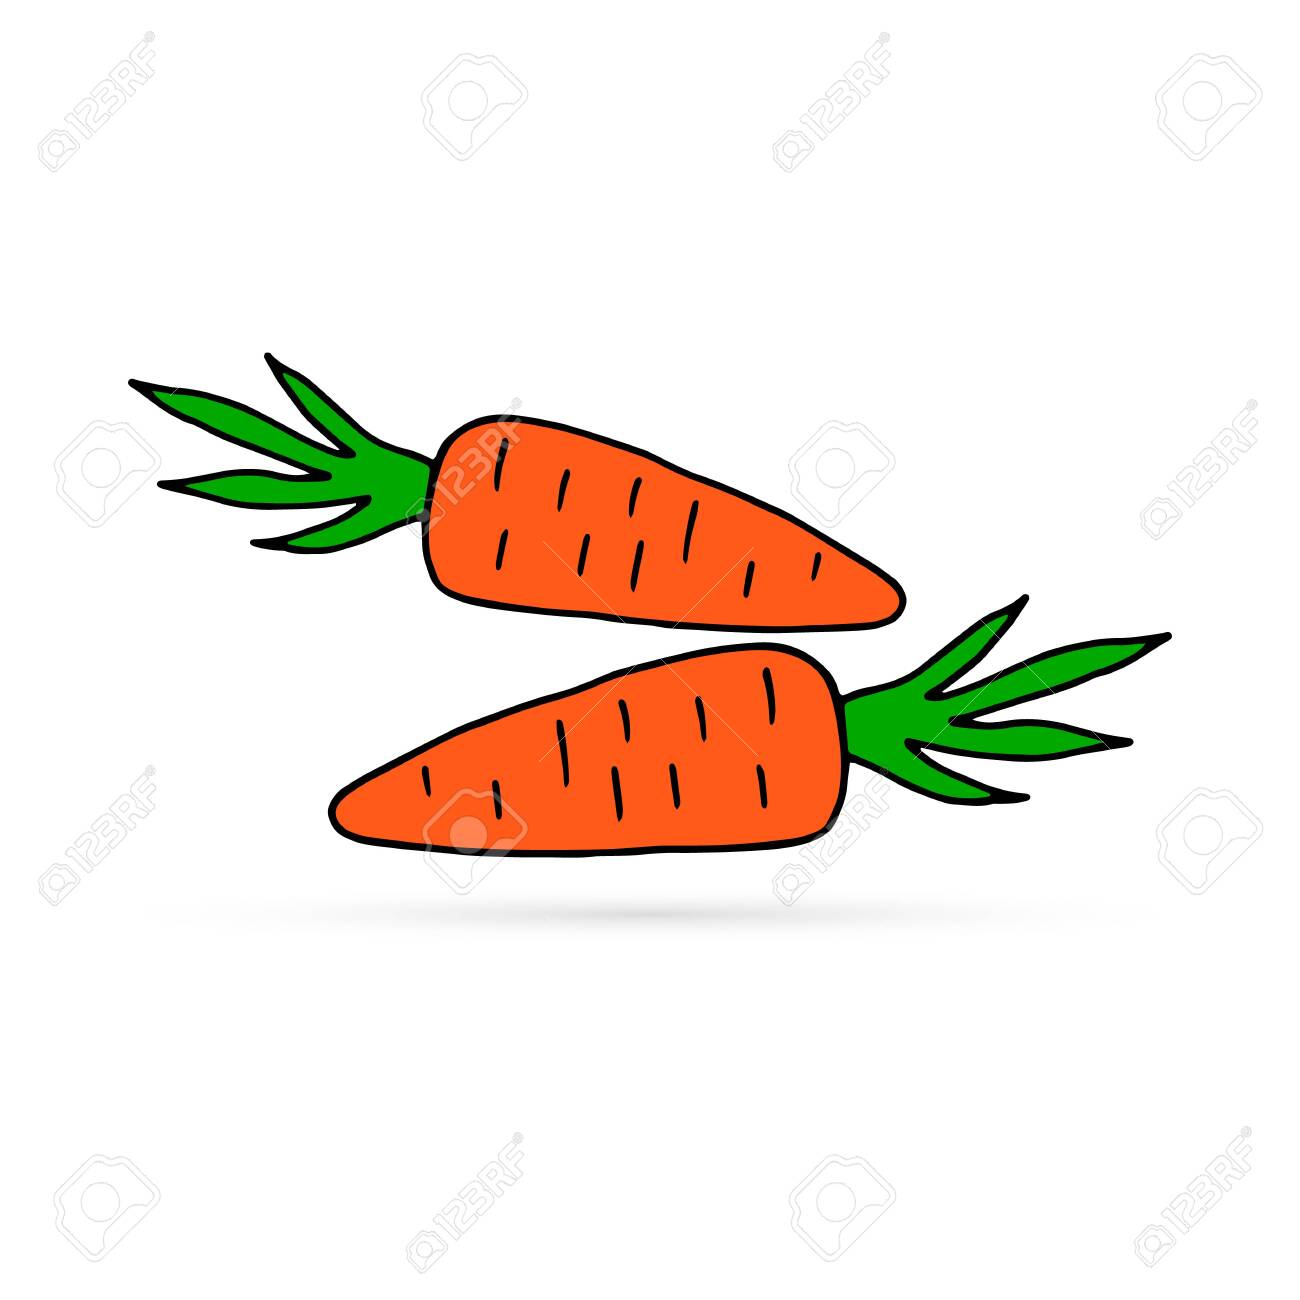 Doodle Carrots Icon Isolated On White Kids Hand Drawing Art Royalty Free Cliparts Vectors And Stock Illustration Image 135758855